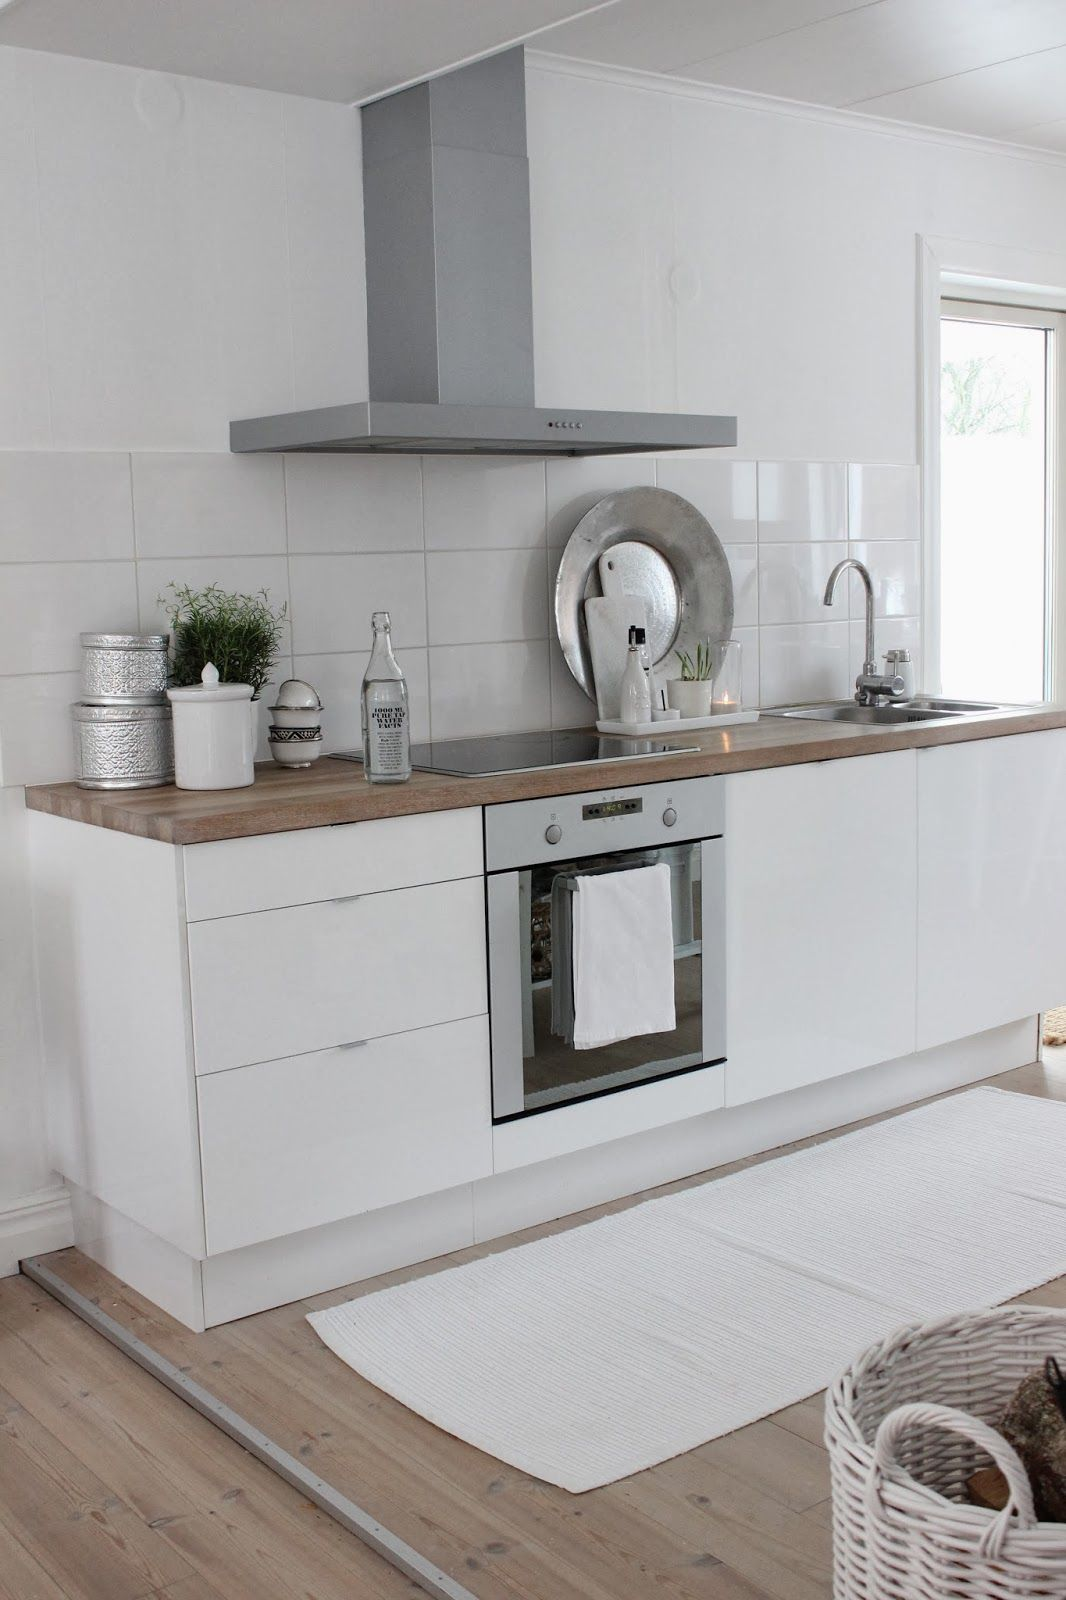 13 Tiny White Contemporary Kitchen With Wooden